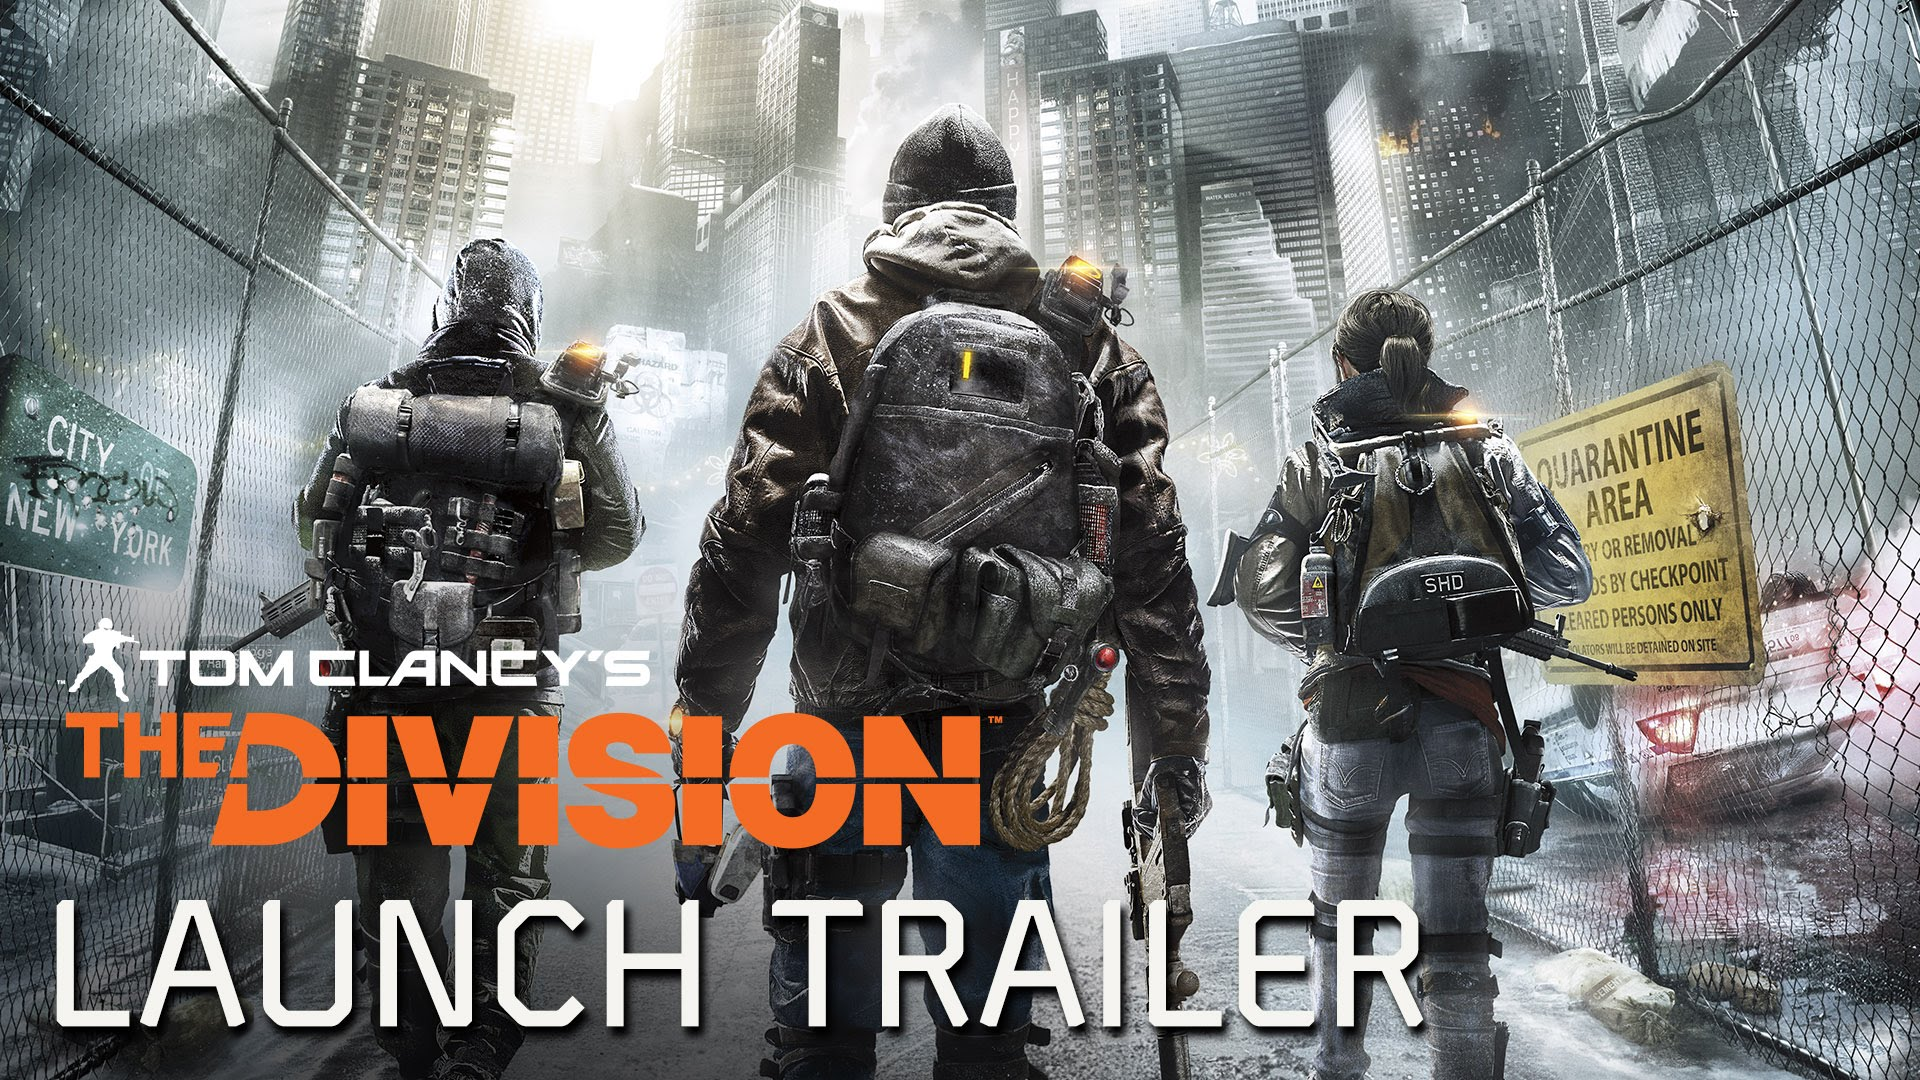 Tom Clancy's The Division - PS4 (Digital Code) - Playstation Network